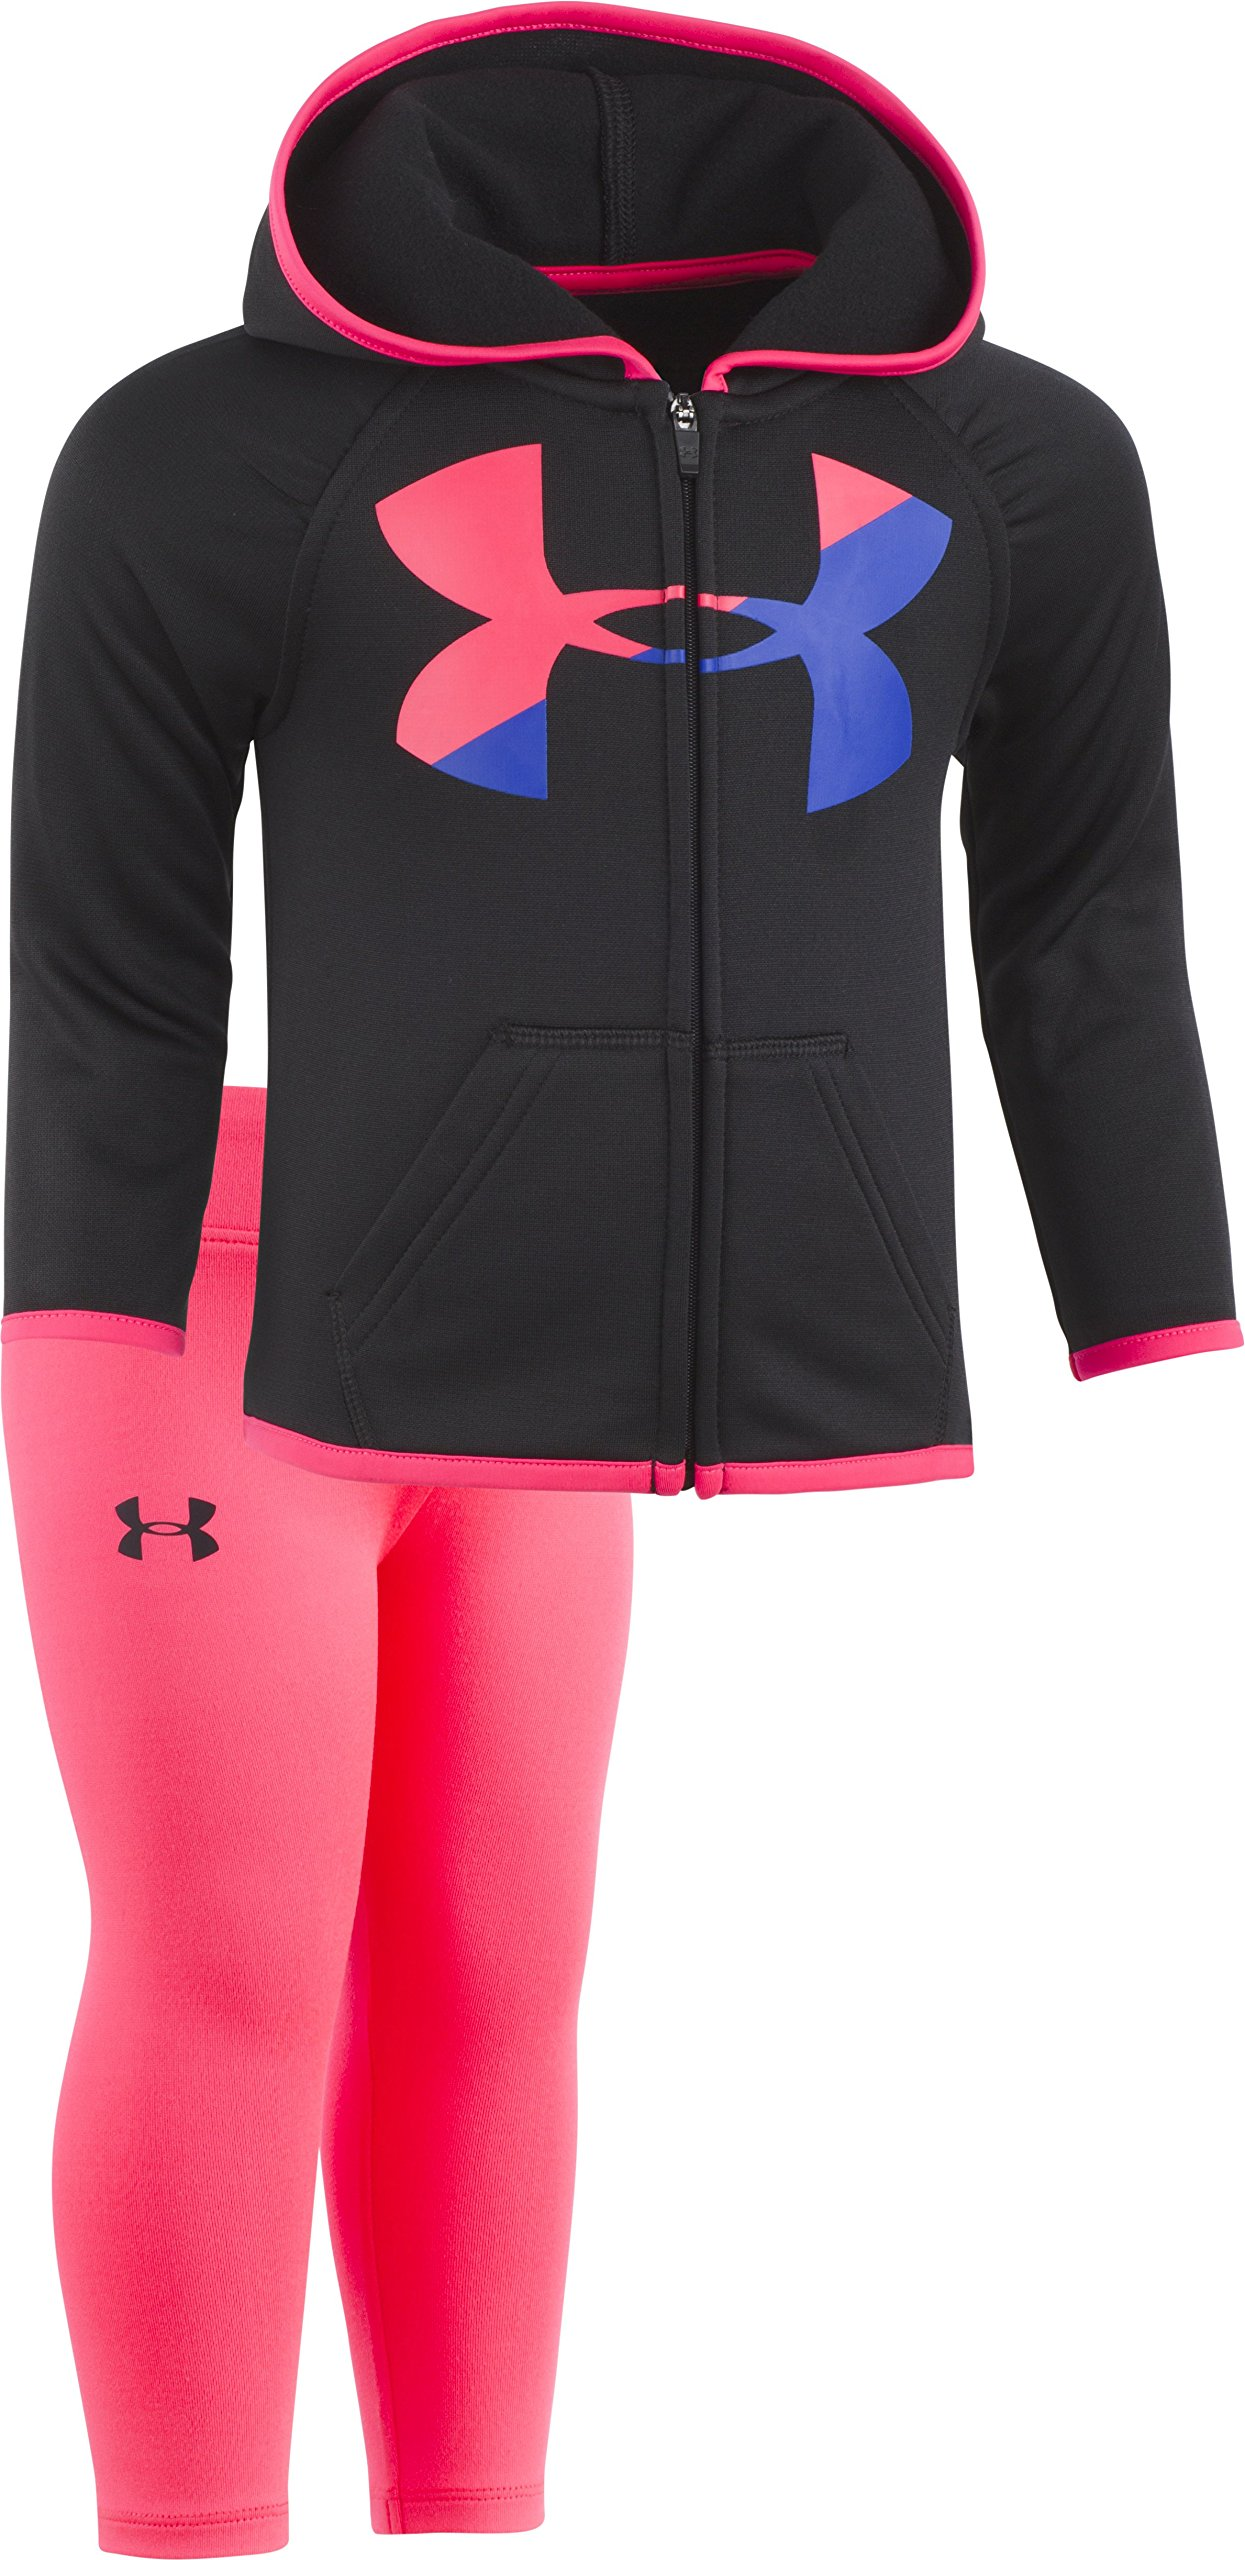 Under Armour Baby Girls' Big Logo Hoody Set, Black, 3/6M by Under Armour